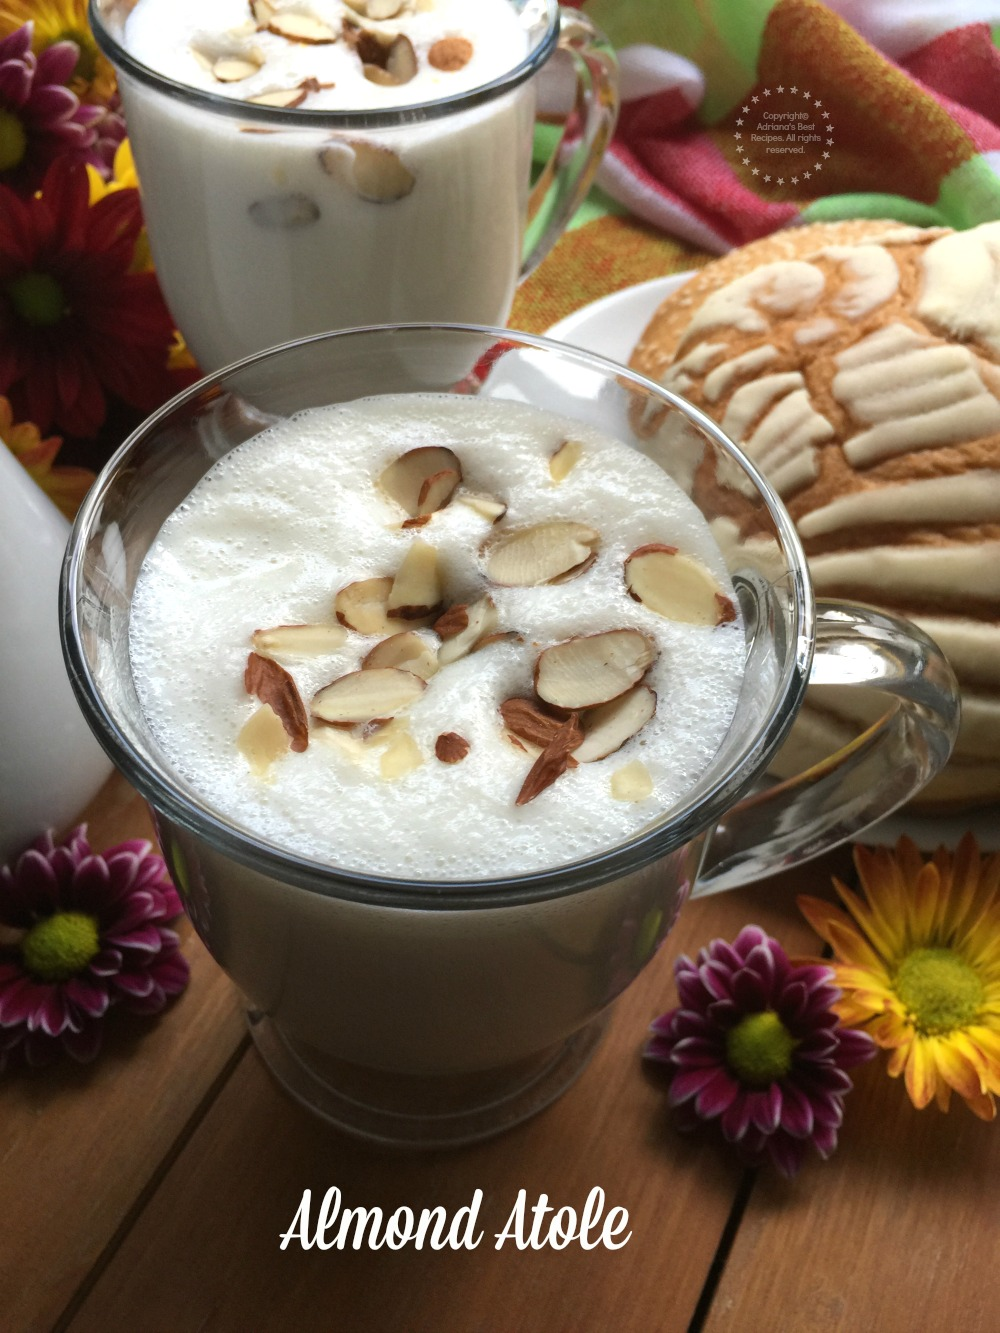 Almond atole recipe to celebrate Hispanic Heritage Month with milk